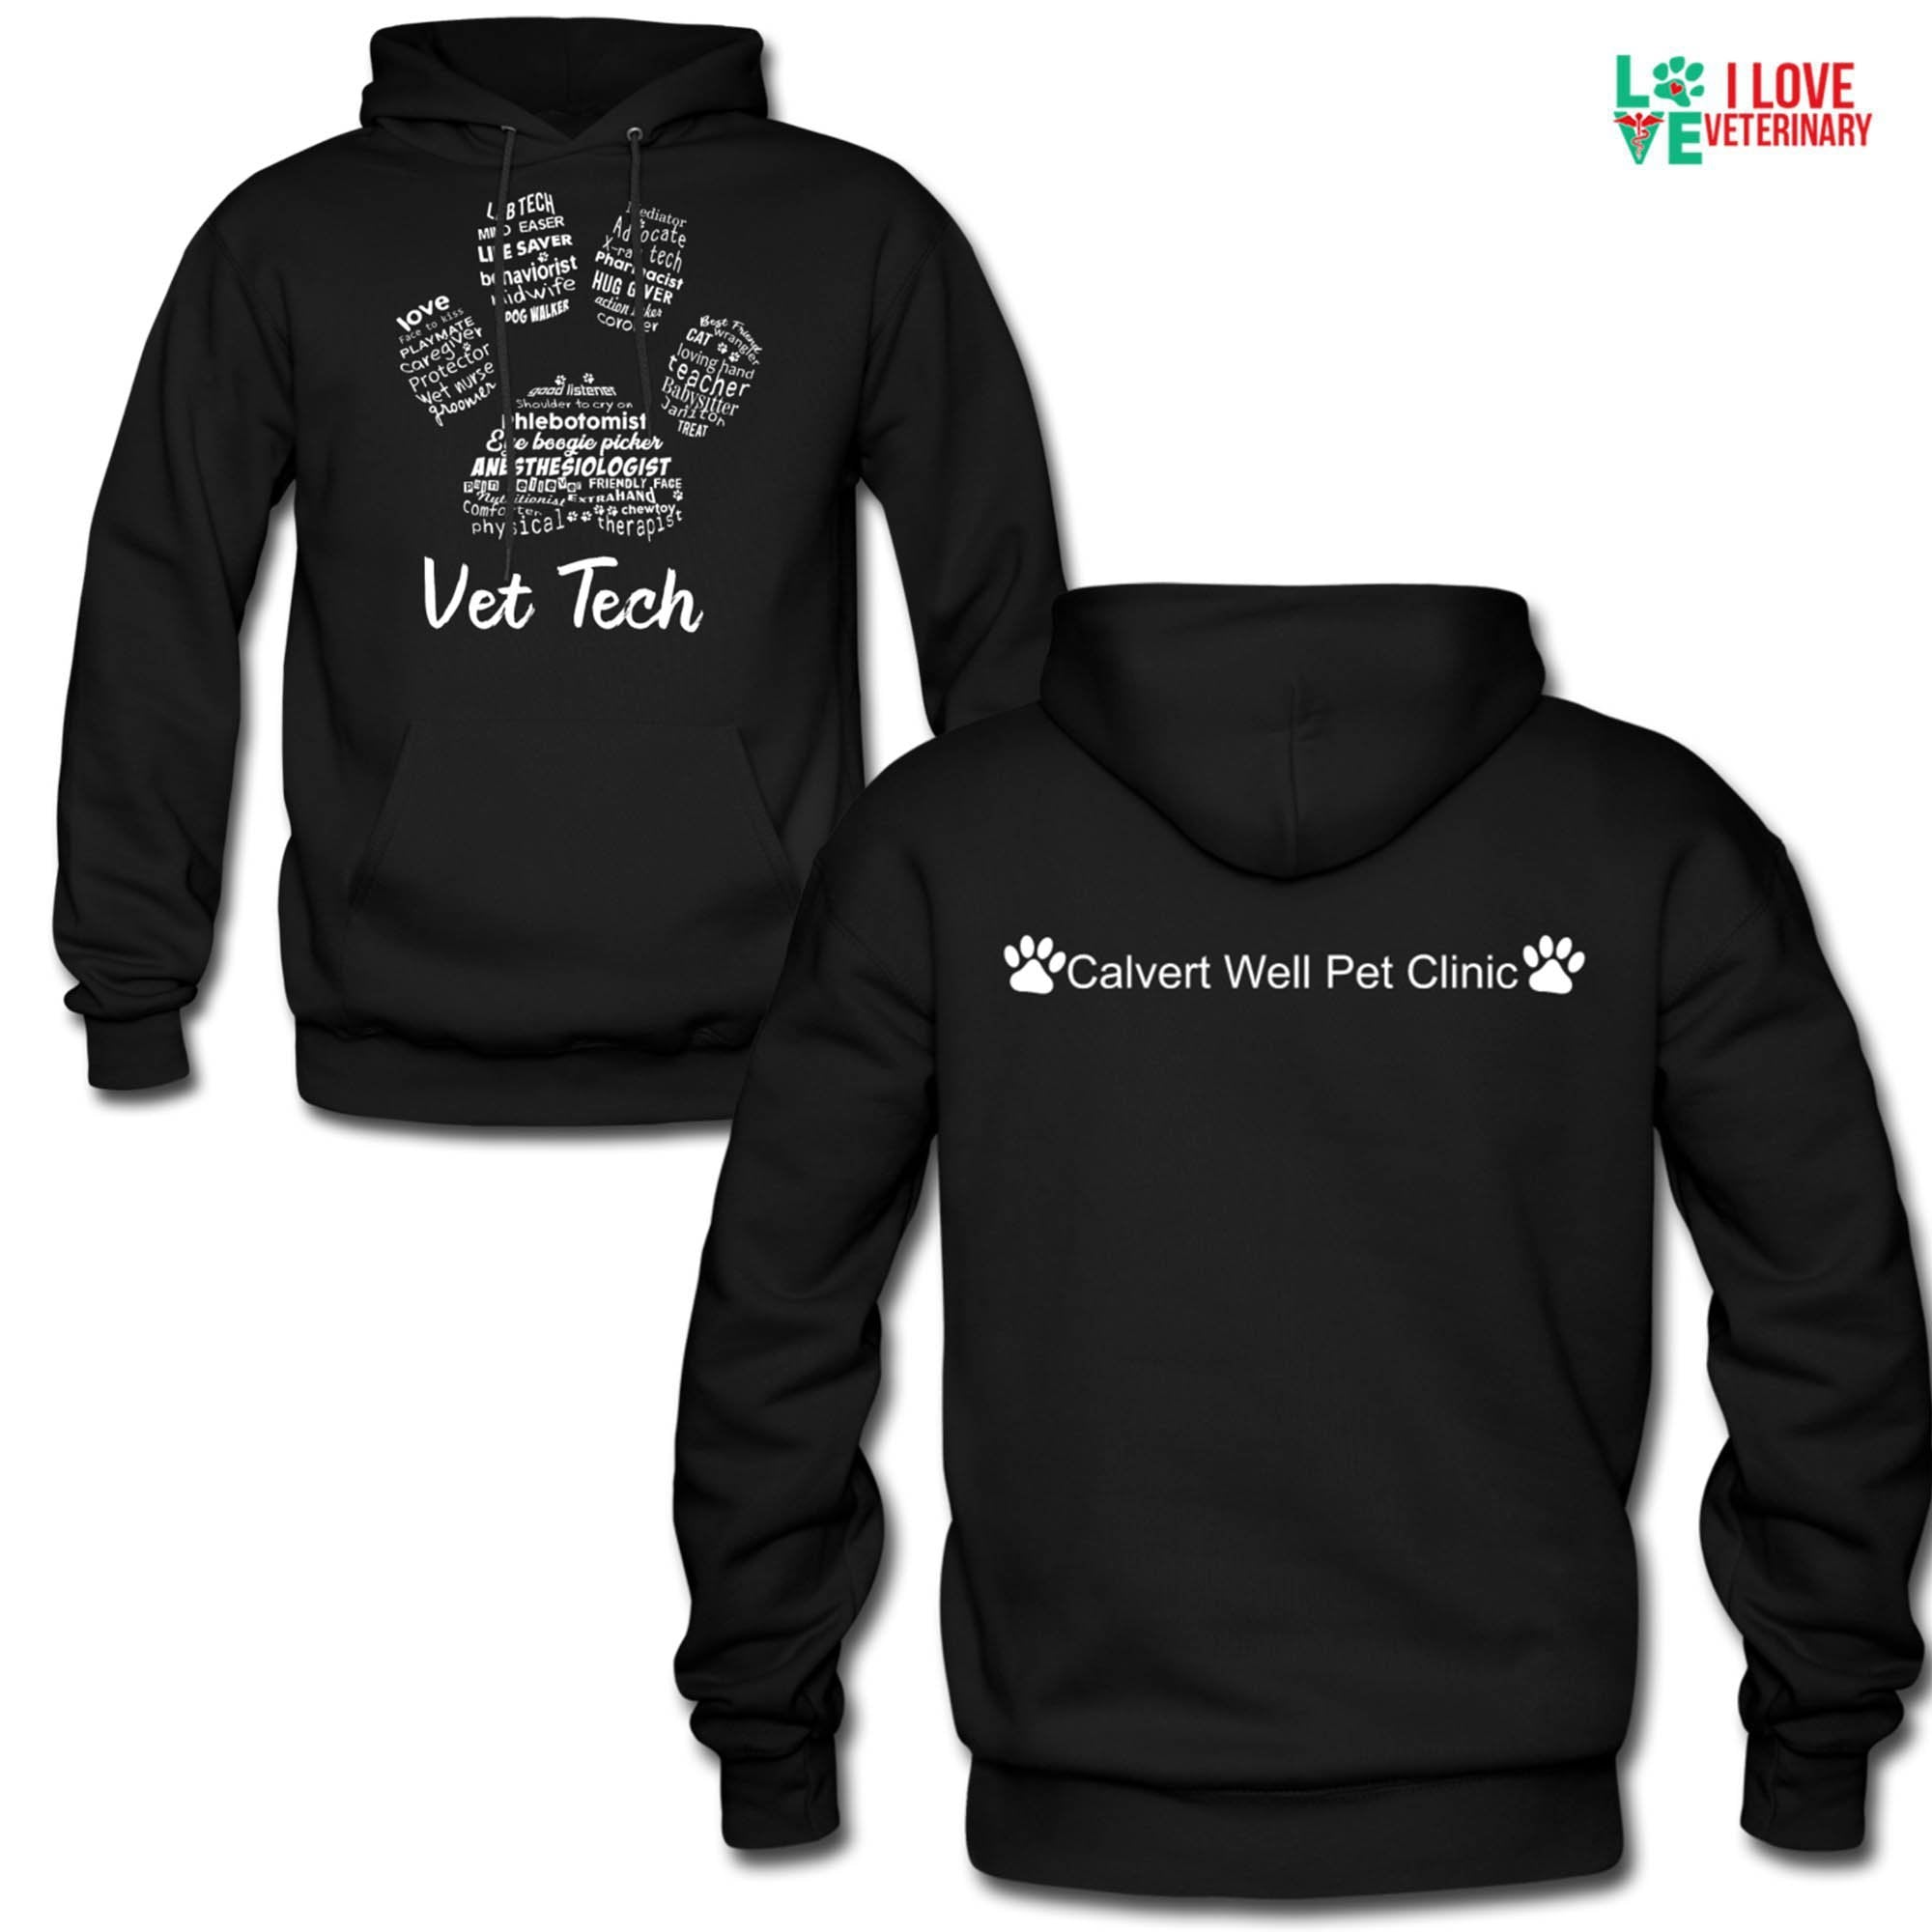 Calvert Well Pet Clinic Unisex Hoodie-Men's Hoodie-I love Veterinary